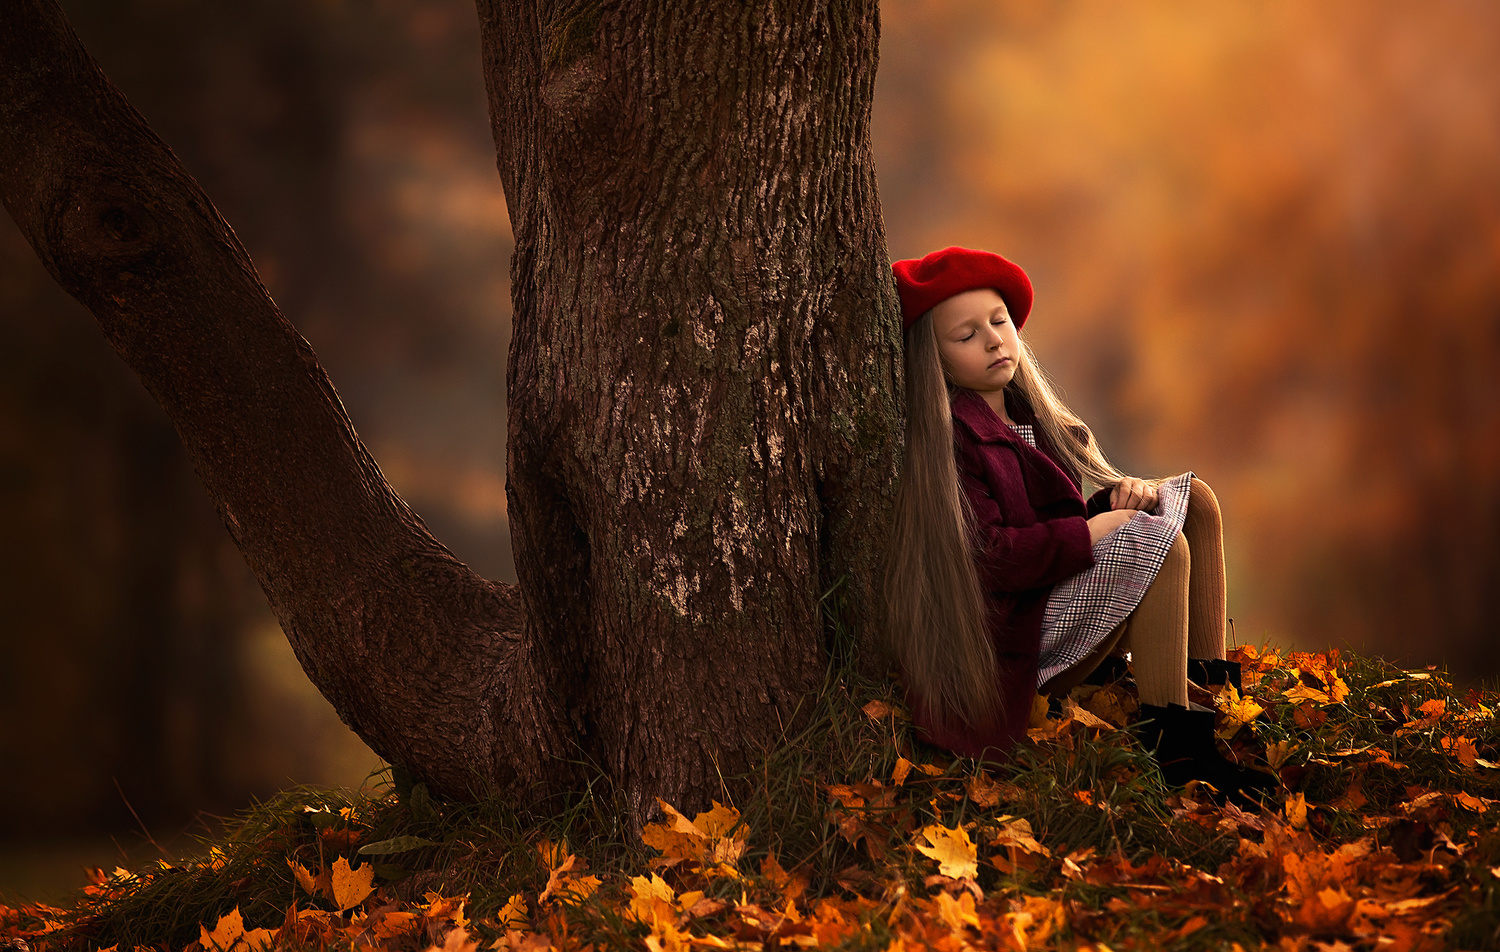 Fall colors by Heikki M